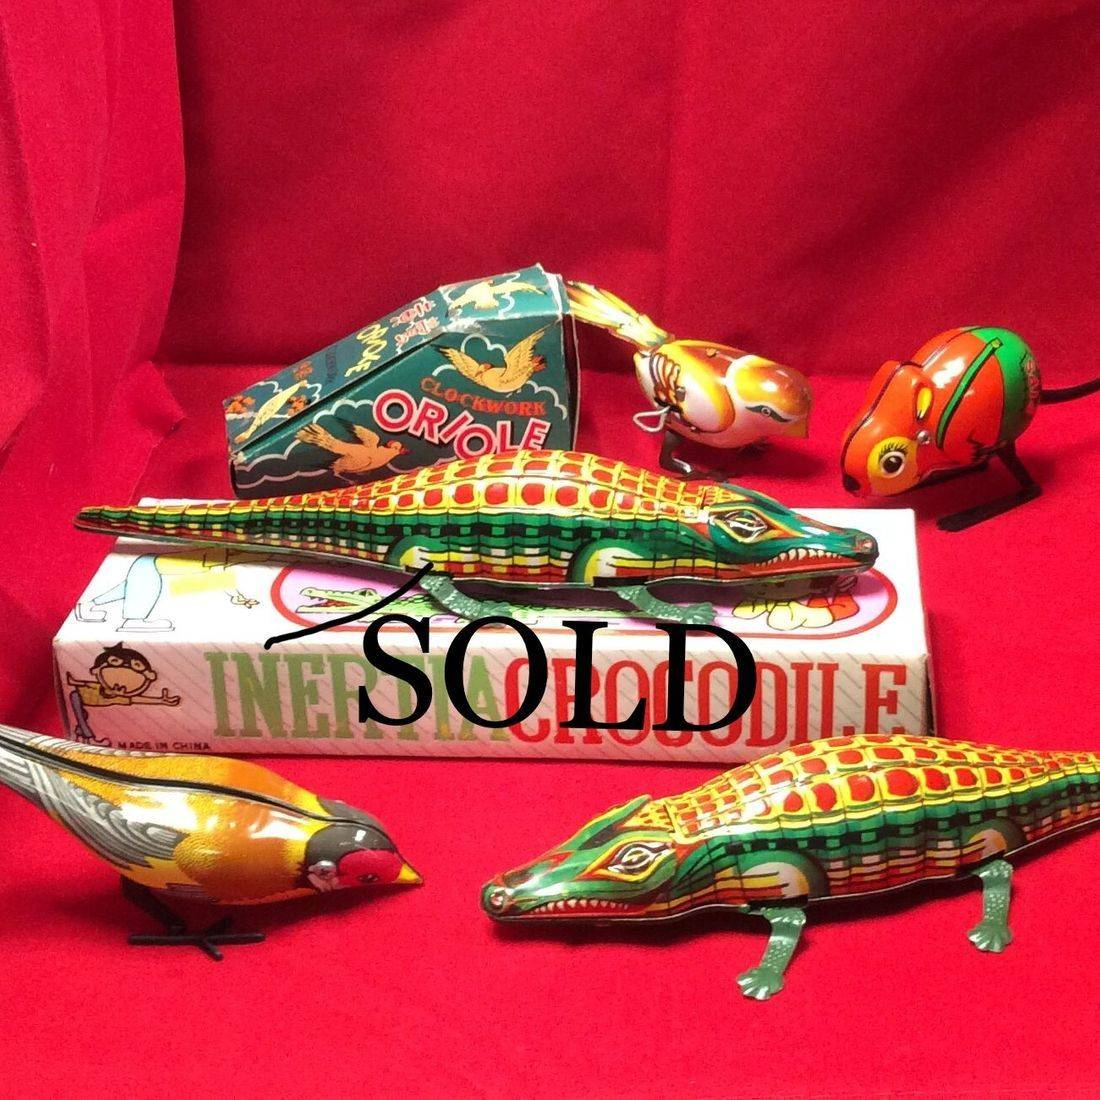 1960's Wind-up Oriole w/Box  $20  ,  1950's Wind-up Fips Mouse Germany No/Box  $25  ,  60's Friction Croc w/Box  $35  ,  60's Friction Croc No/Box  $30  ,  60's Wind-up Russian Pecking Titmouse Bird No/Box $20.00